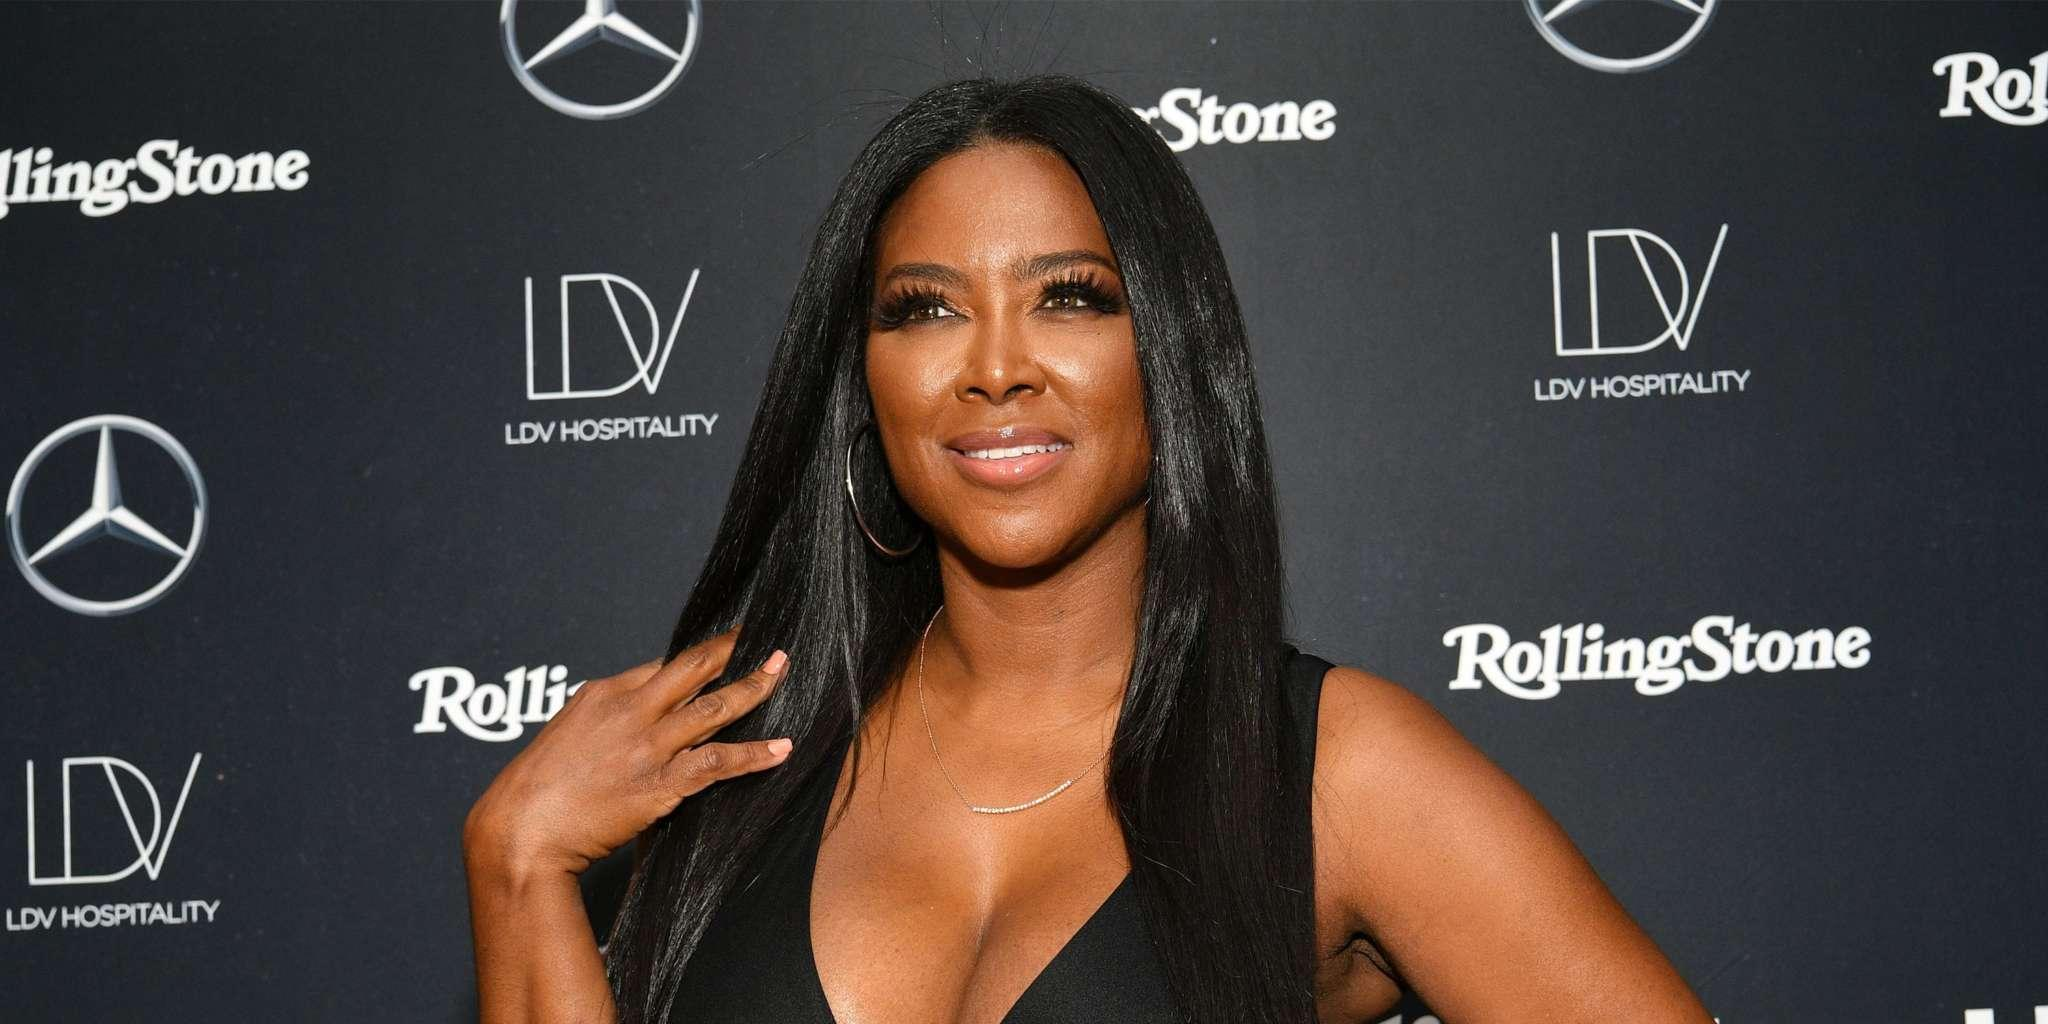 Kenya Moore Says She's Always On Top - Check Out Her Fabulous Photo That Has Fans Saying She's With Marc Daly